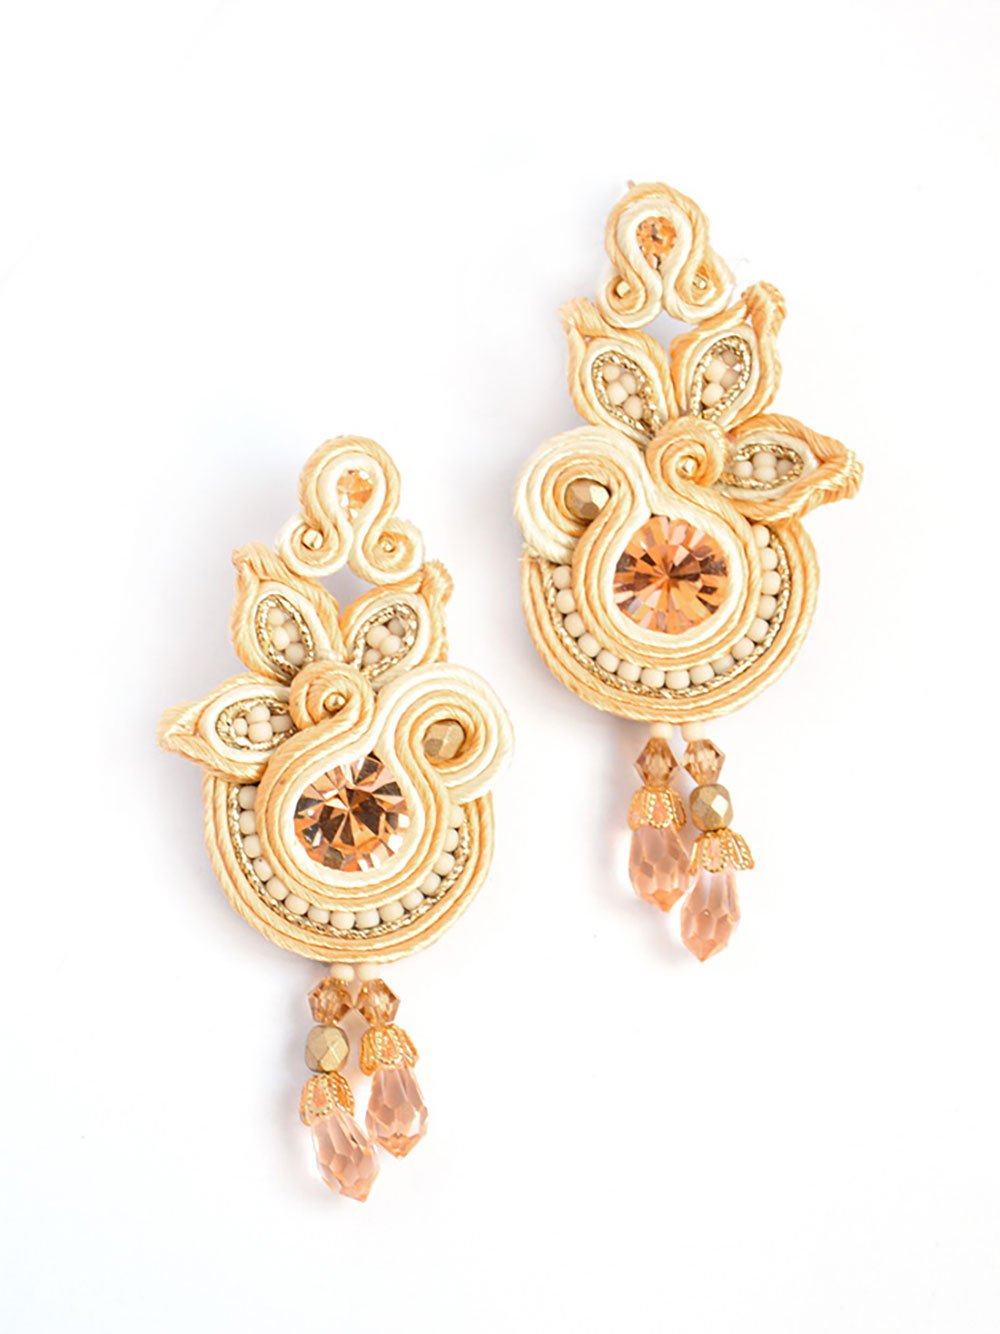 Floral drop earrings in beige colour - Vanessa Stylez Boutique